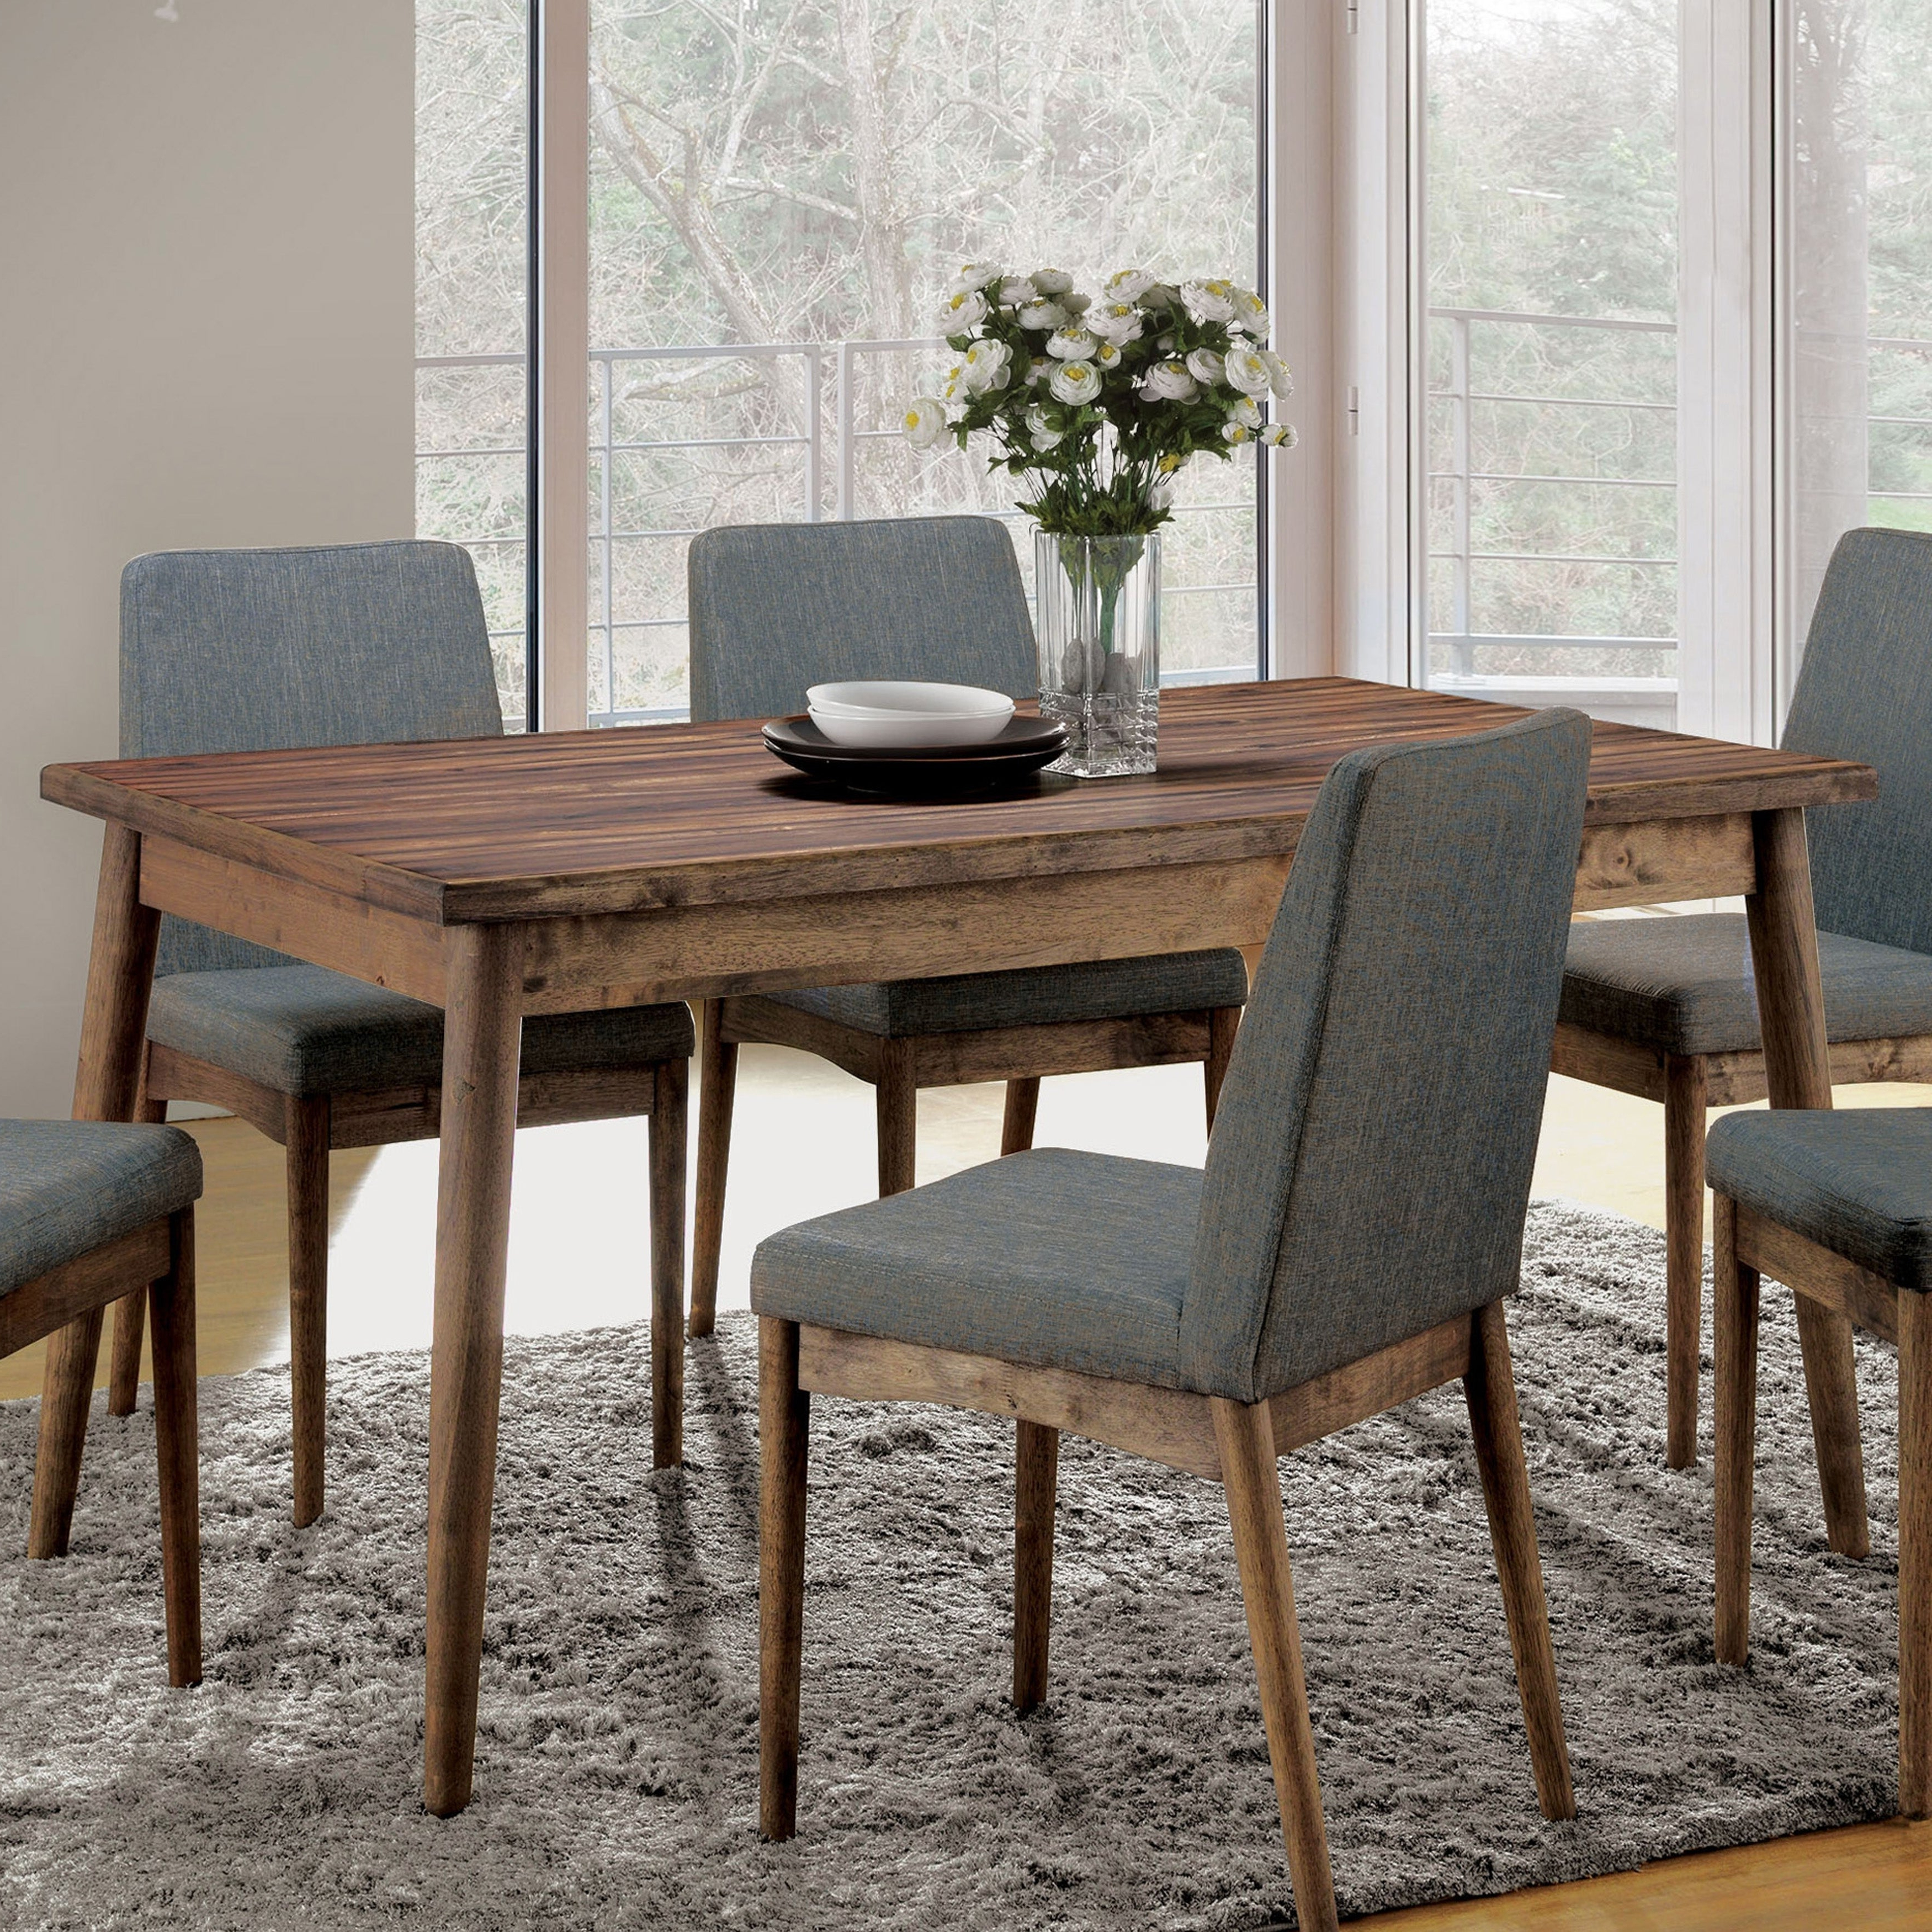 Most Popular Buy Furniture Of America Kitchen & Dining Room Tables Online At For Biggs 5 Piece Counter Height Solid Wood Dining Sets (Set Of 5) (View 25 of 25)